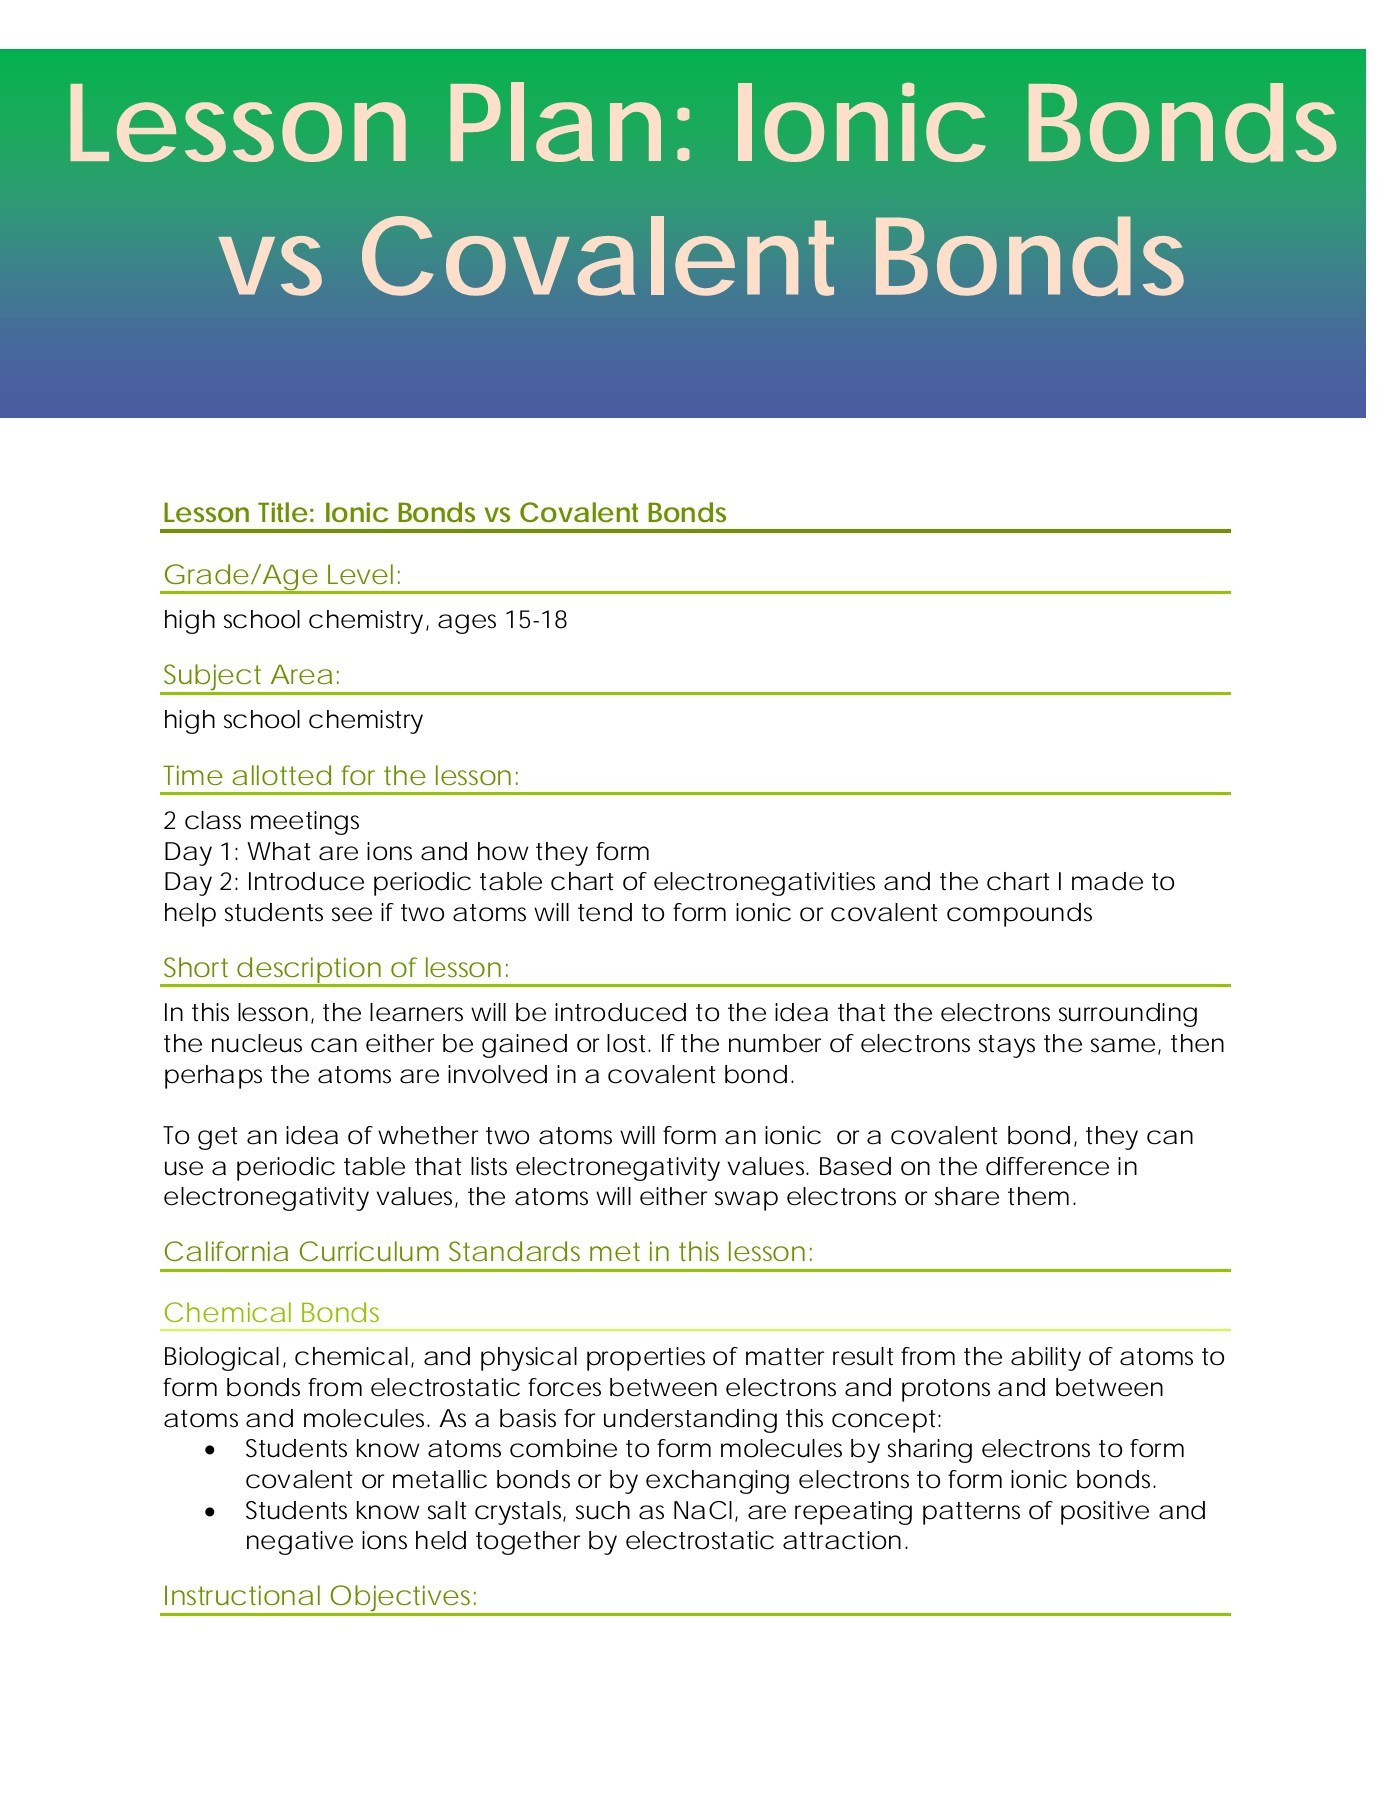 Ionic and Covalent Bonding Worksheet Lesson Plan Ionic Bonds Vs Covalent Bonds for Students